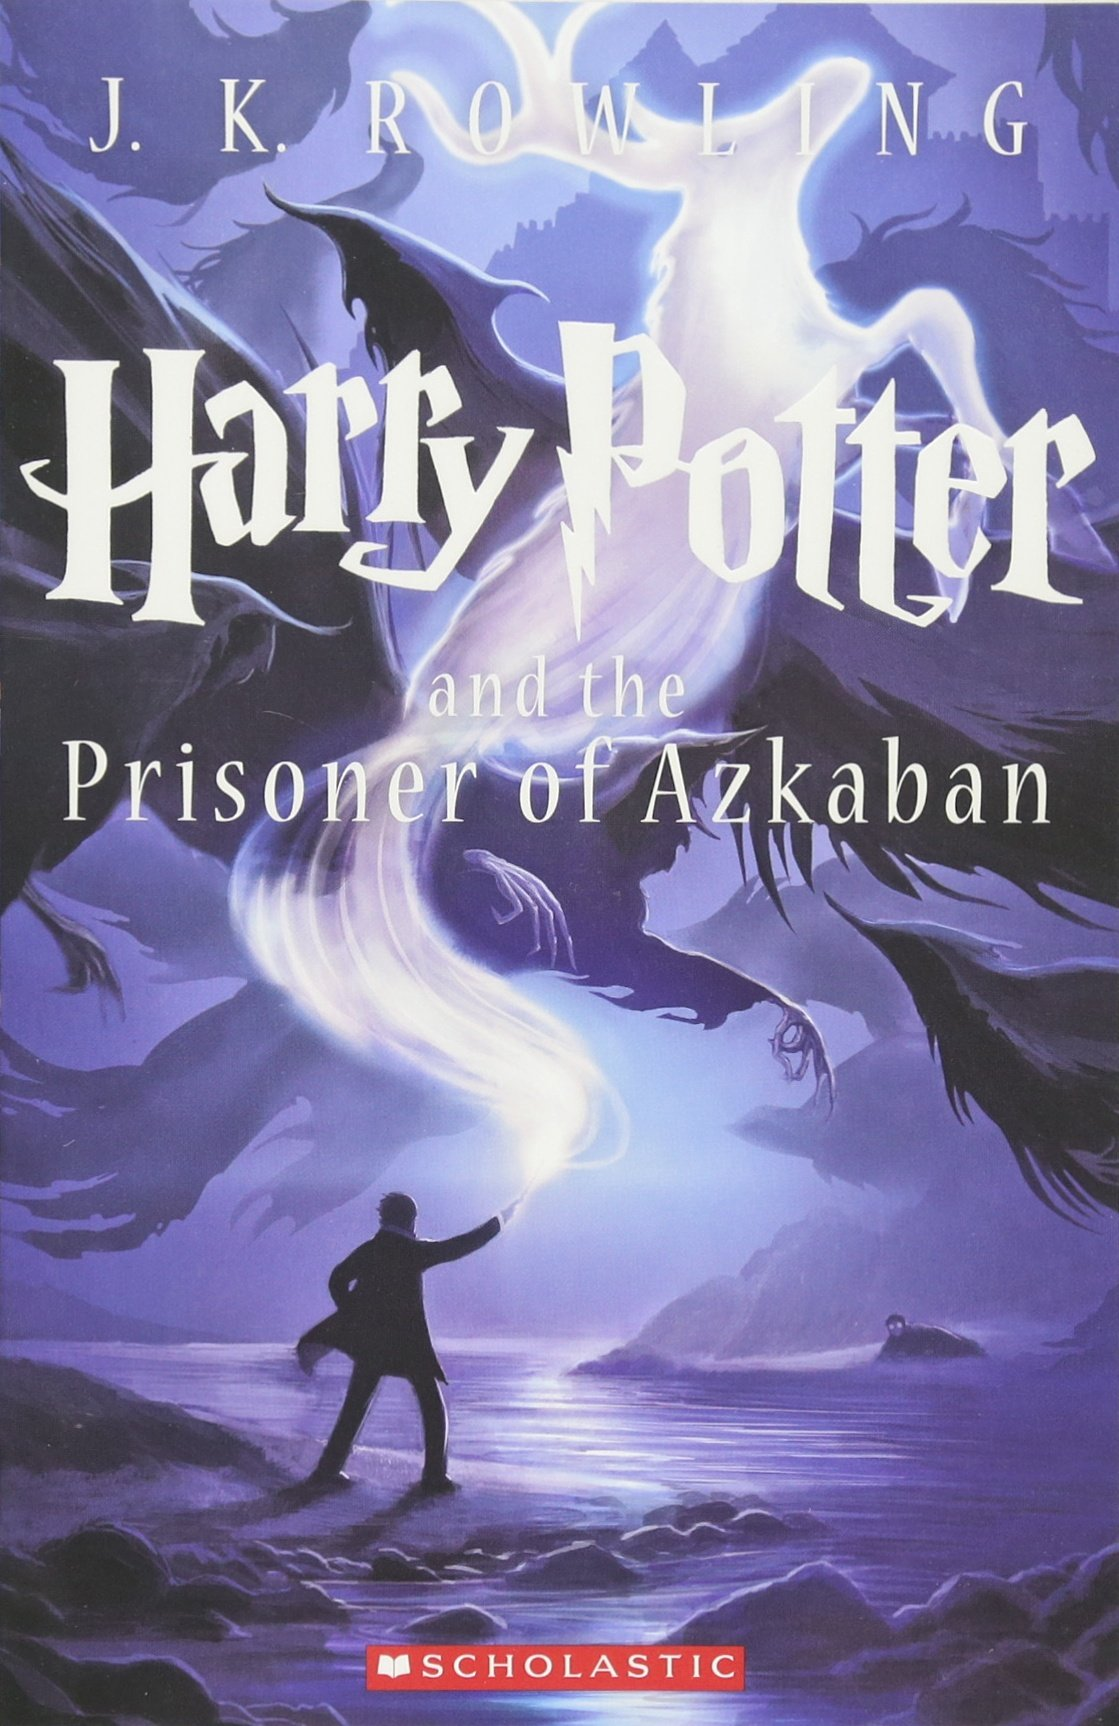 Harry Potter And The Prisoner Of Azkaban Book 3 JK Rowling Kazu Kibuishi Mary GrandPre 9780545582933 Amazon Books